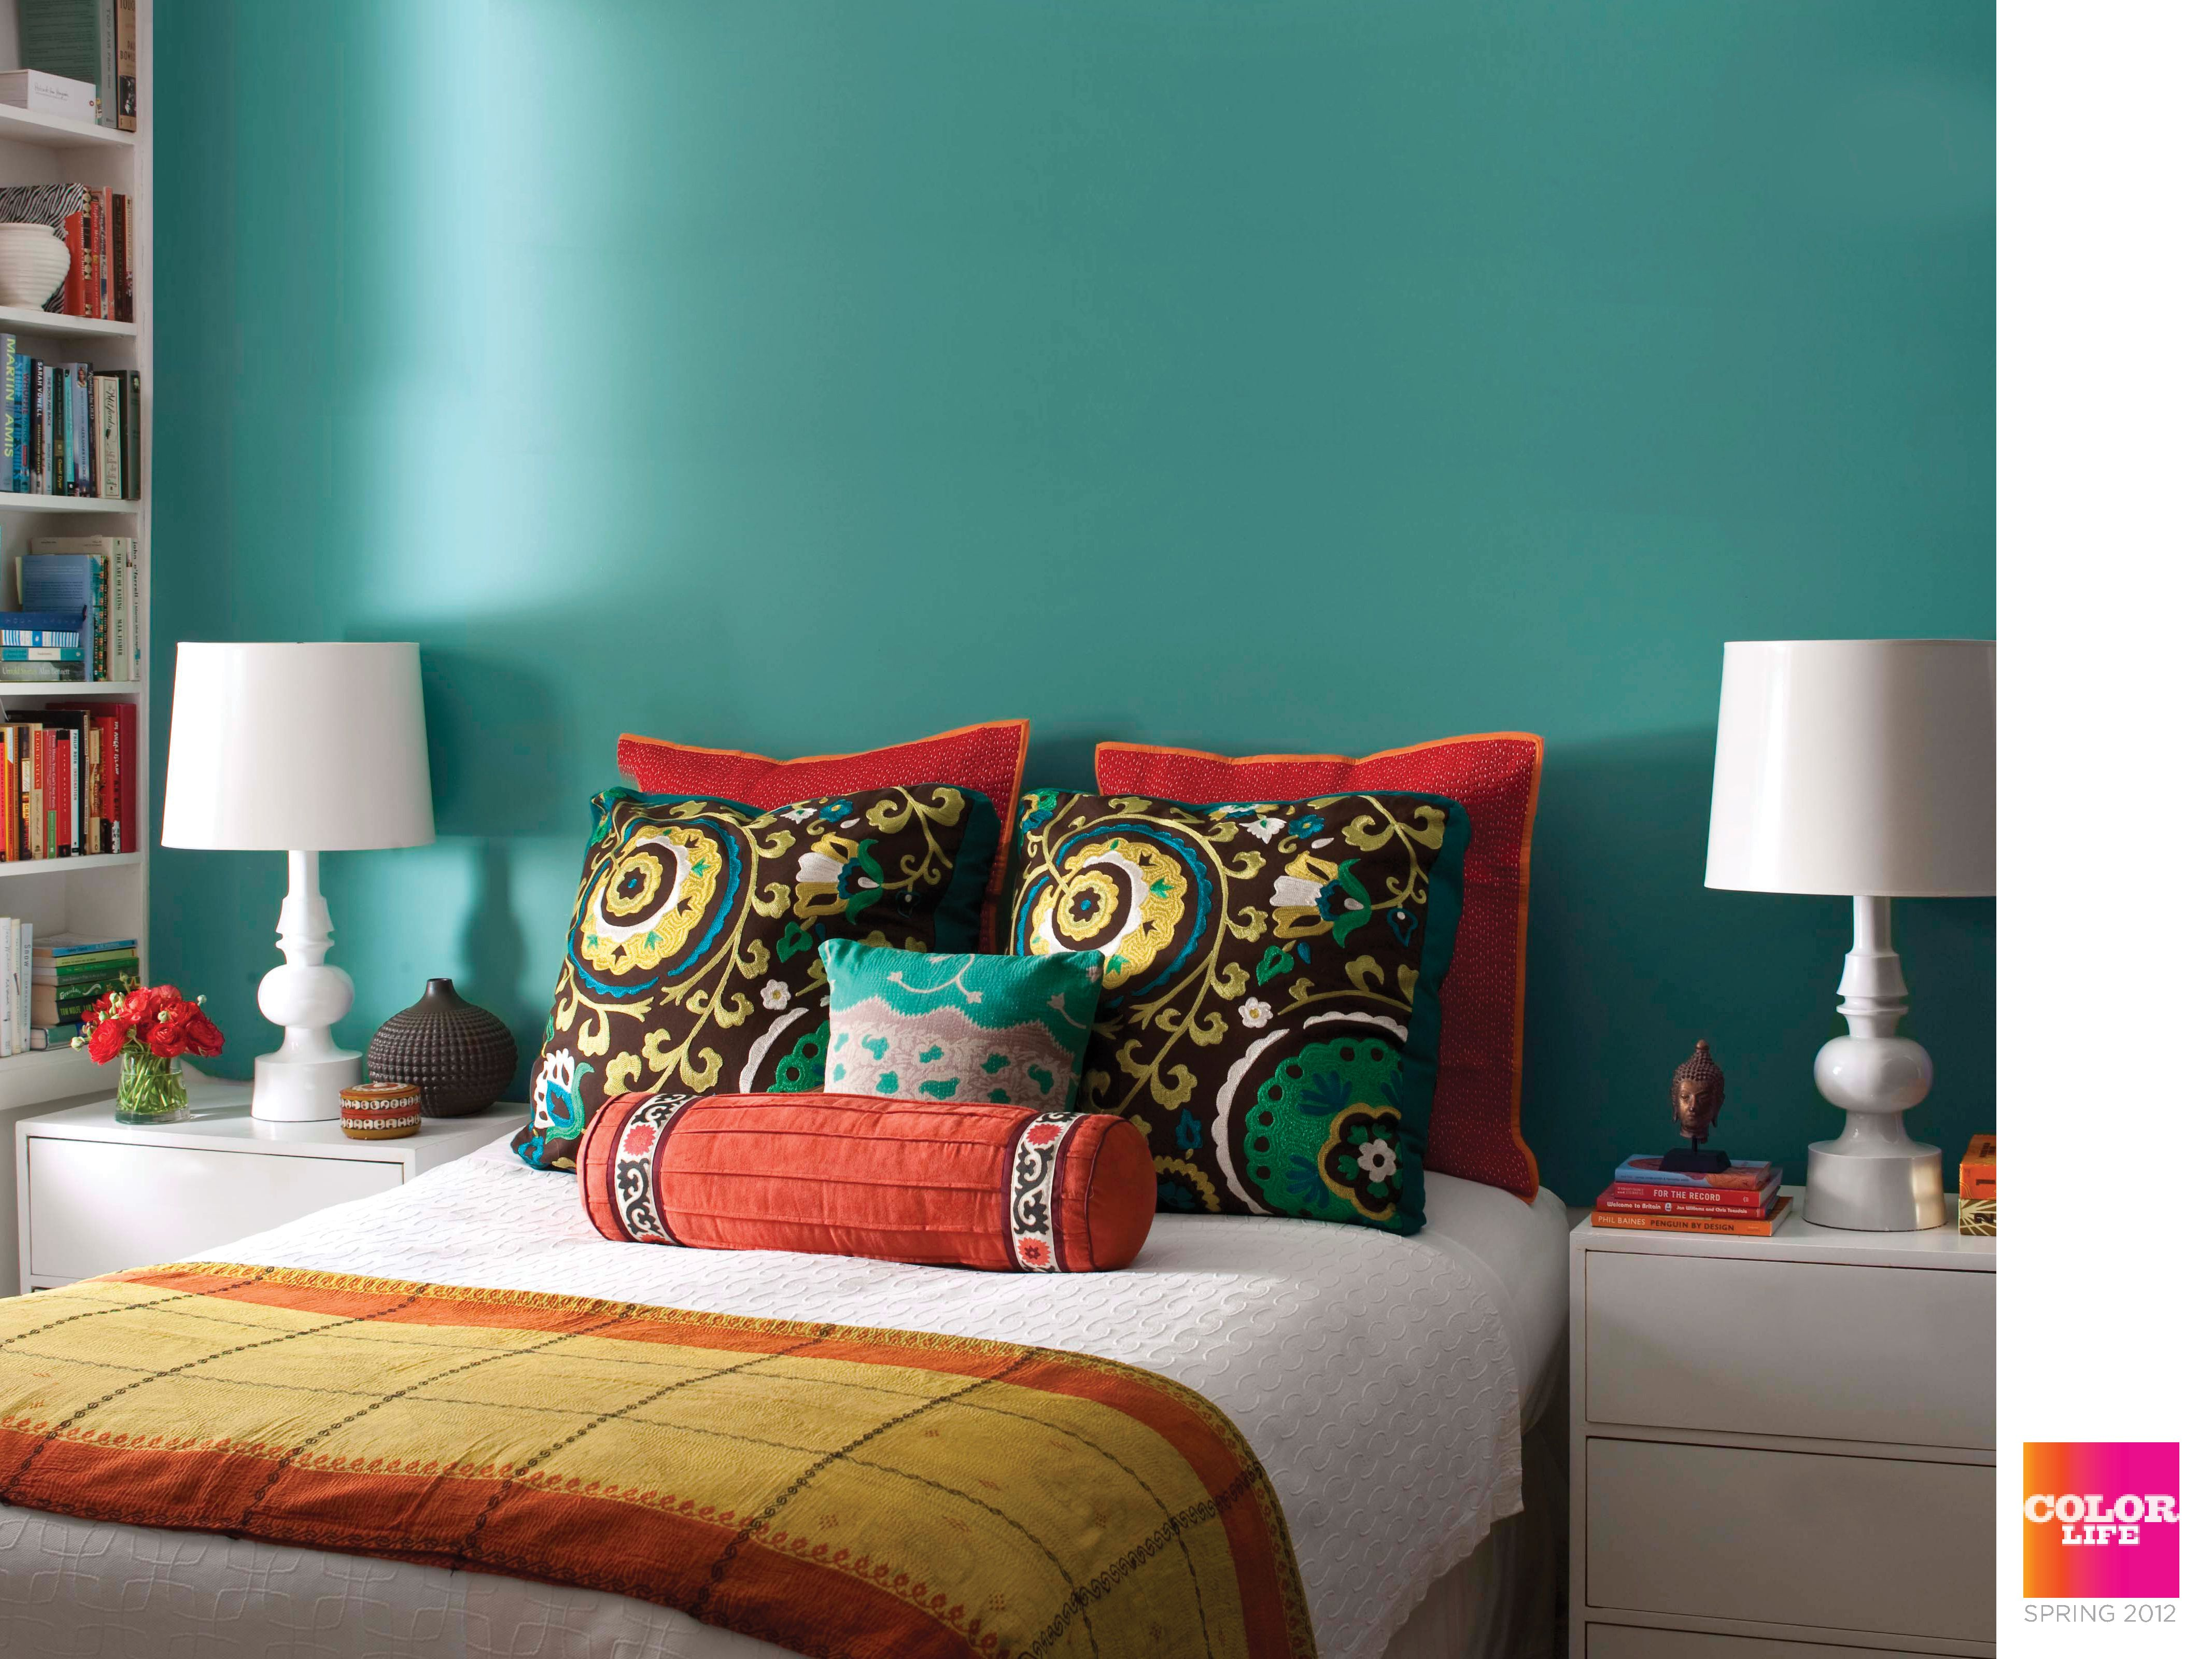 6 Easy Tips For Finding The Best Bedding